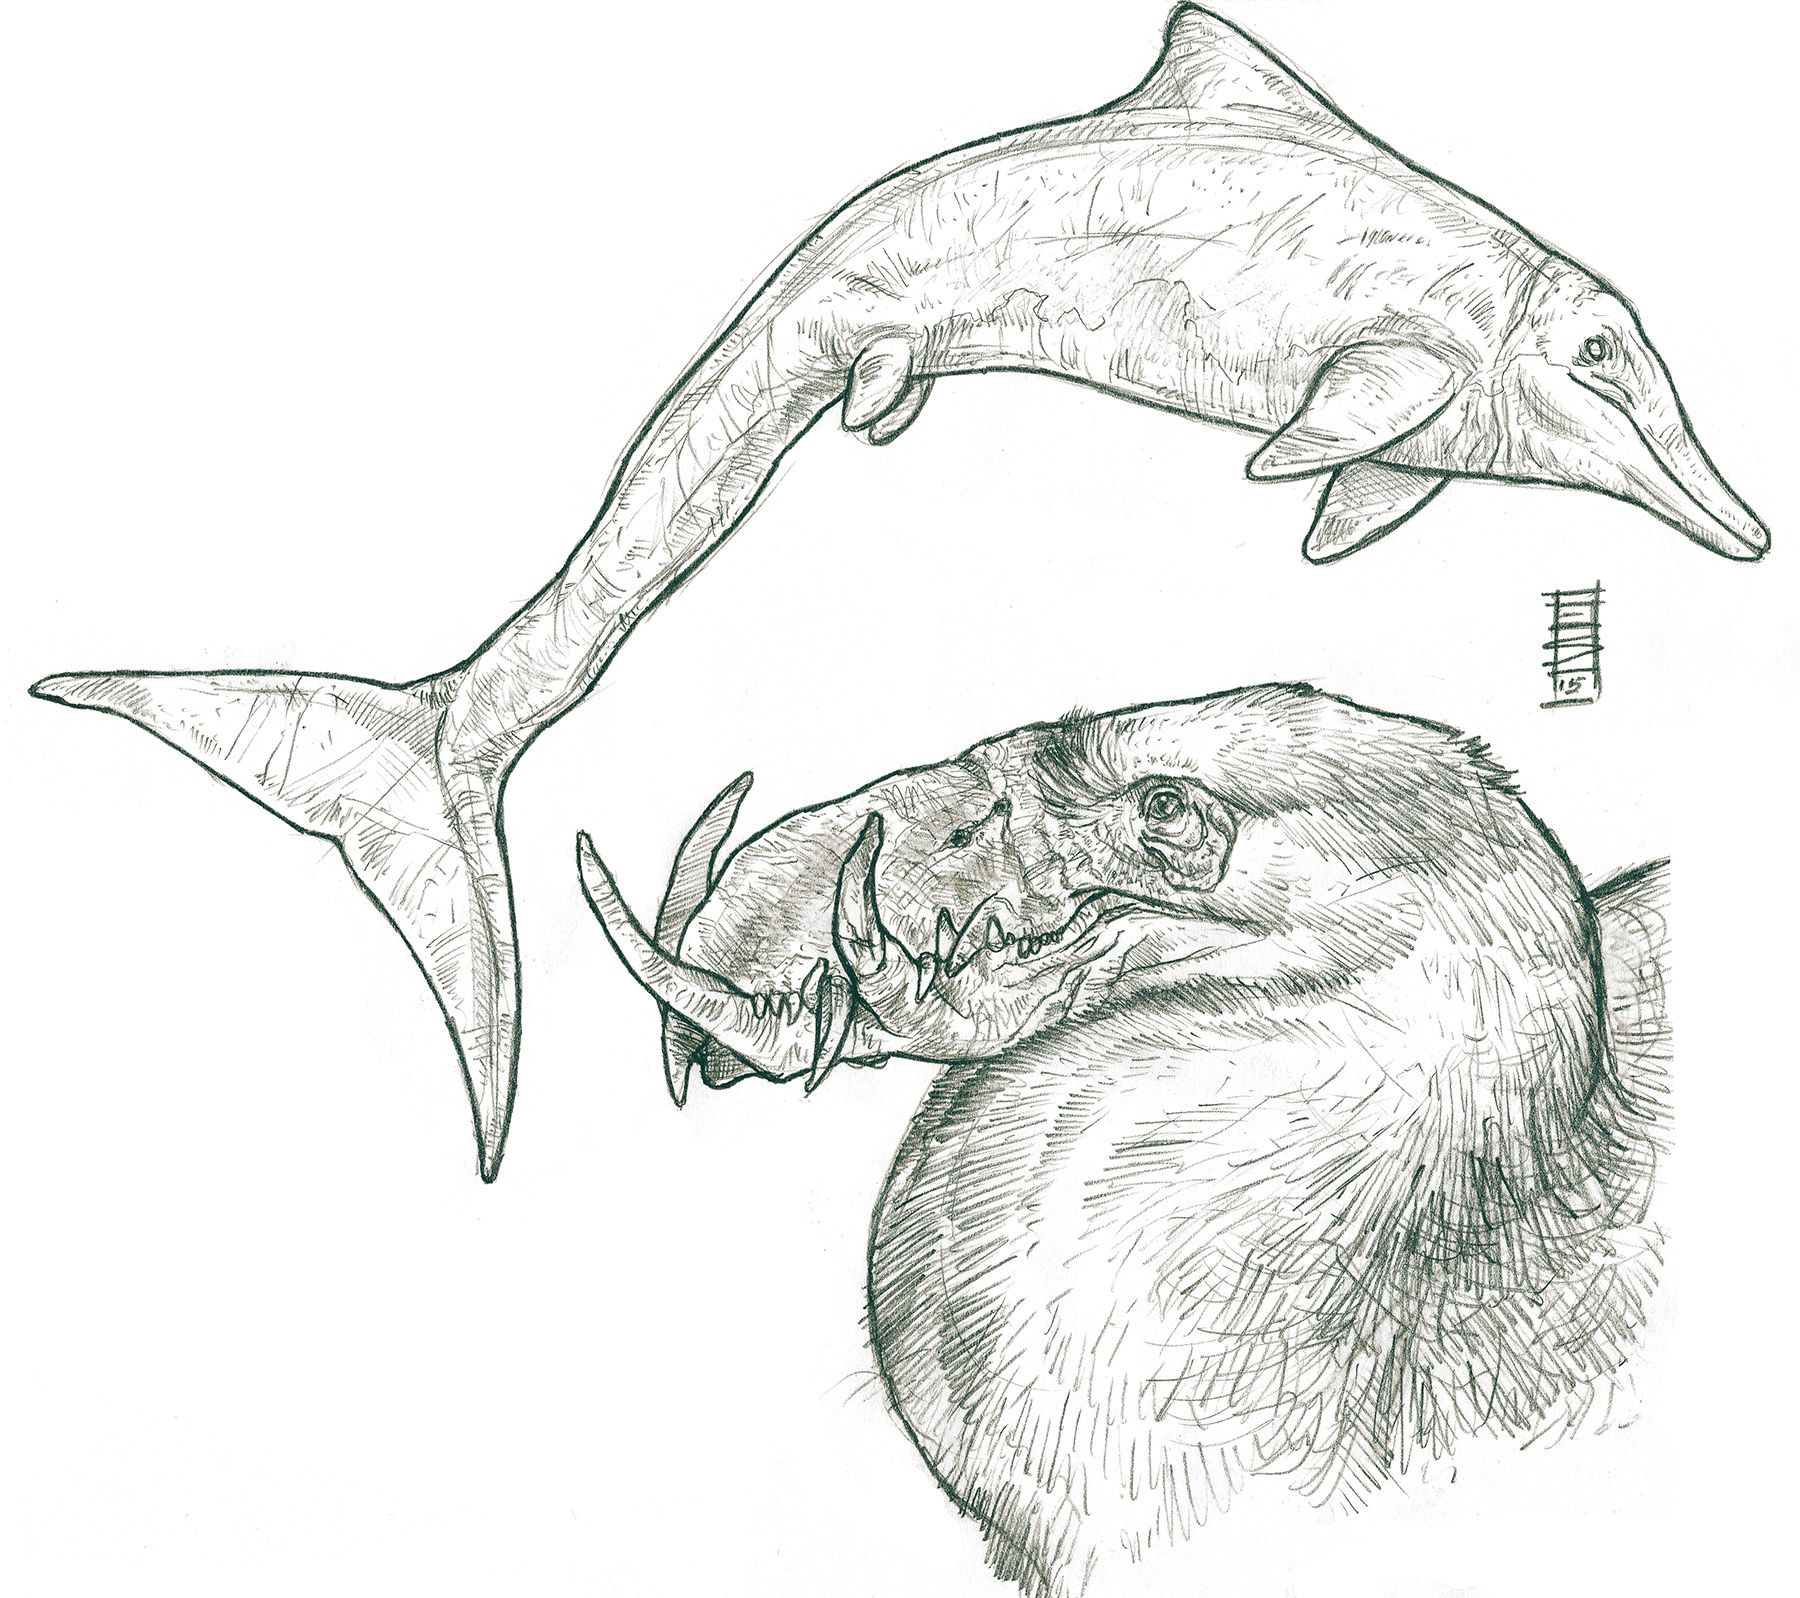 "Old creature sketches inspired by Terryl Whitlatch's ""Science & Principles of Creature Design"". #conceptart #creature #creaturedesign #dolphin #fantasycreature #ichthyosaur #monsters #scifi #sketches #terrorbird #terrylwhitlatch"